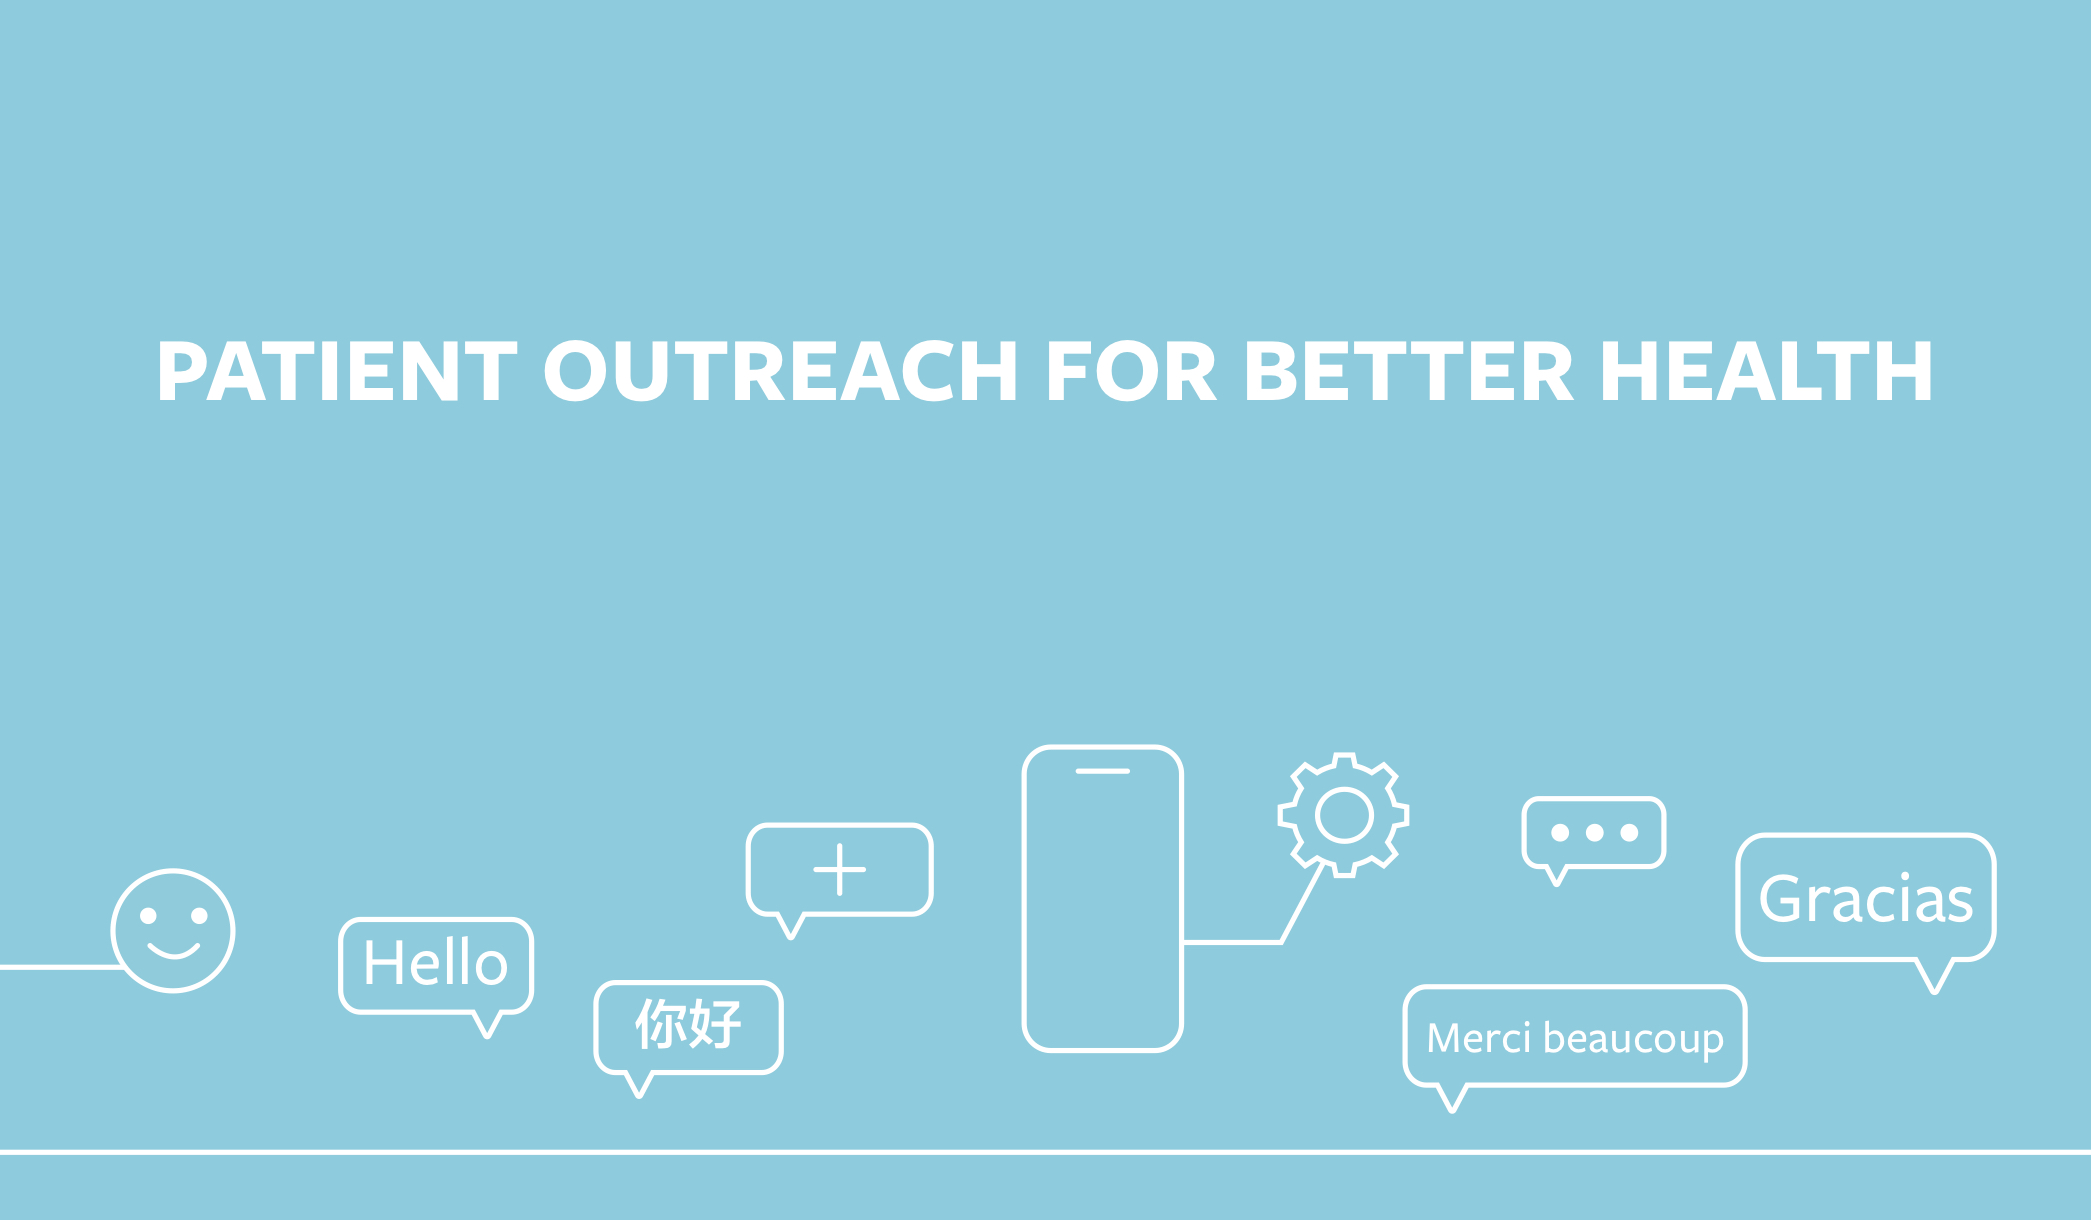 Outreach is the Best First Way to Combat Social Determinants of Health